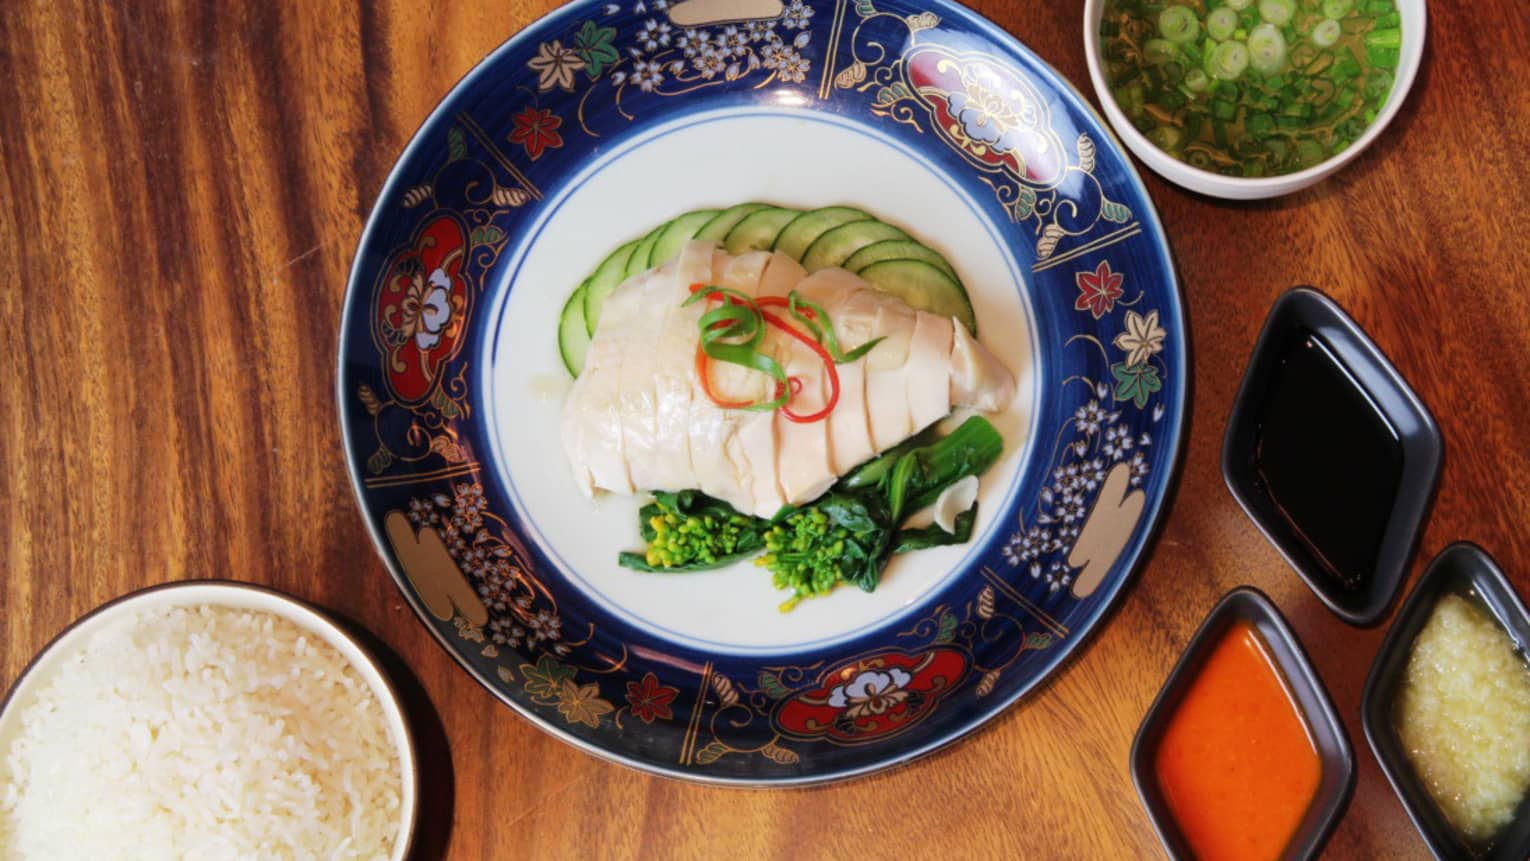 Aerial view of Hainanese Chicken Rice on decorative plate